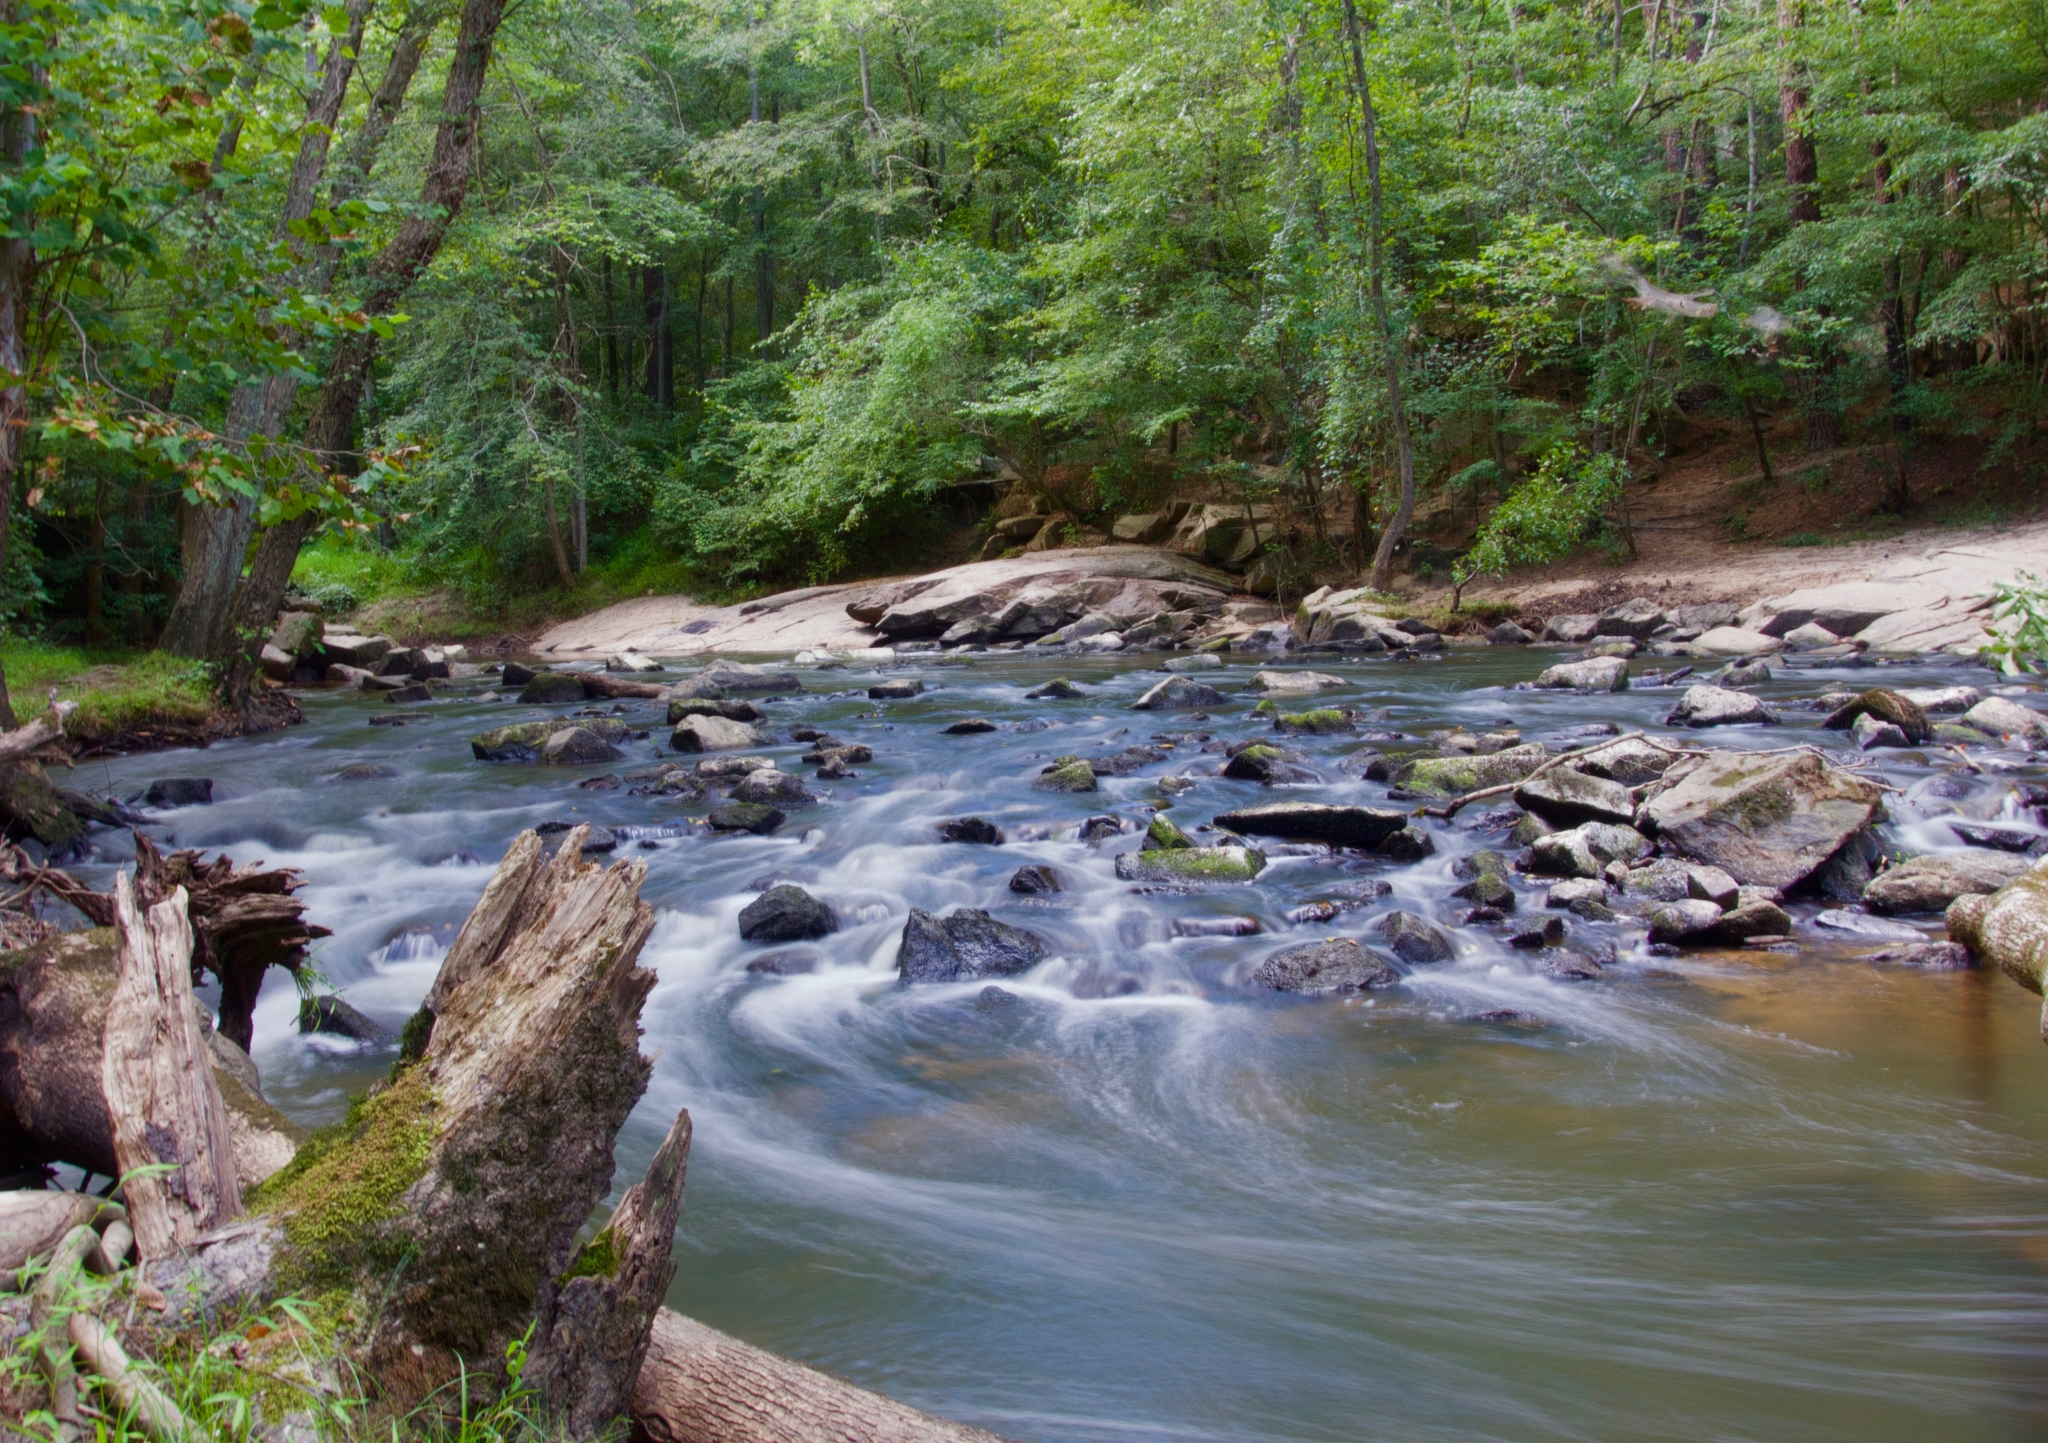 Canva - Stream in a Forest With Grey Rocks